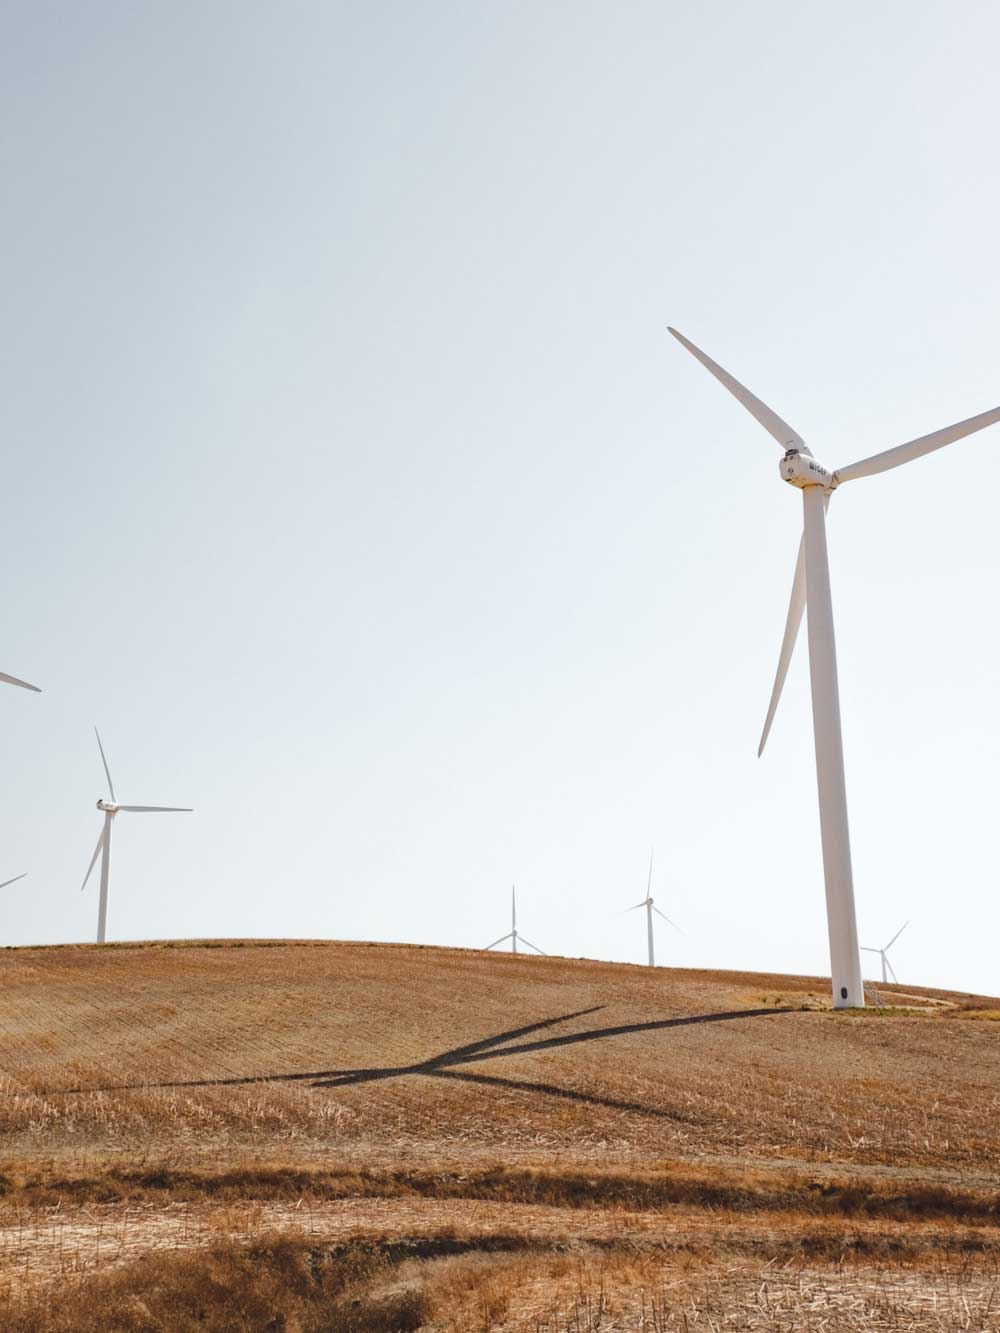 Wind Turbines Standing On A Grassy Plain, Against A Blue Sky.